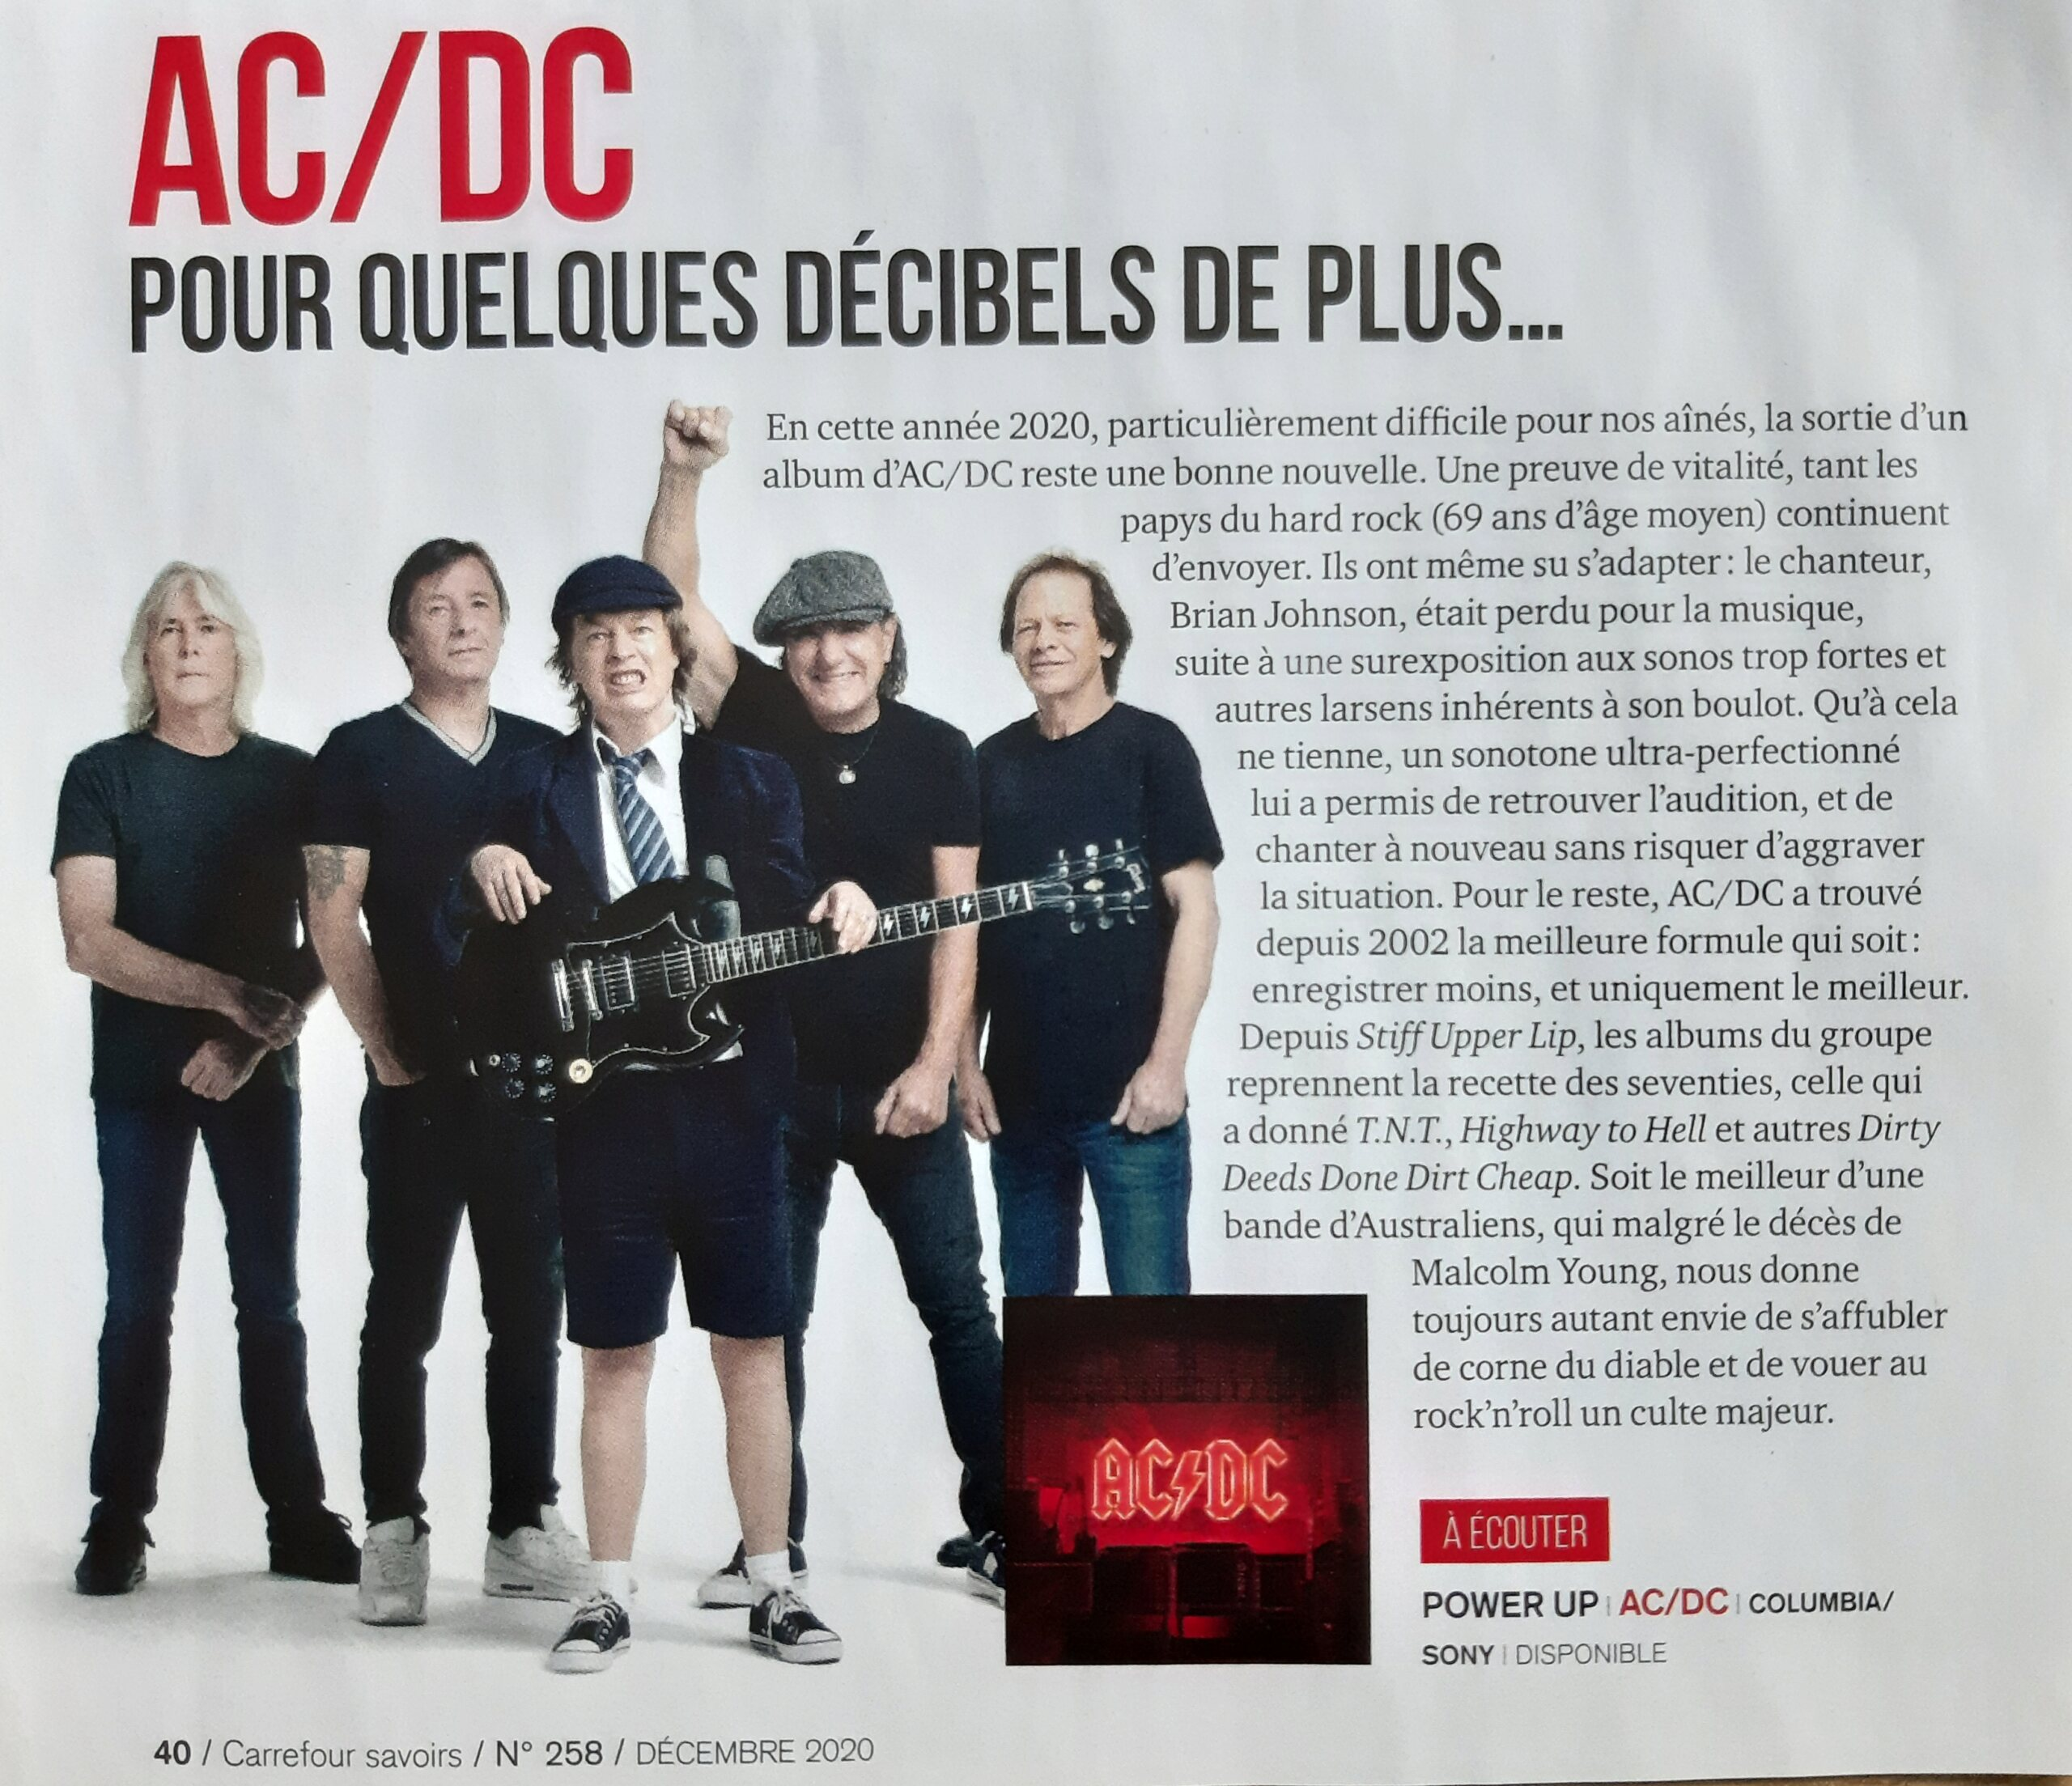 ACDC Power Up (2020) Hard-Rock Australie - Page 4 20201223